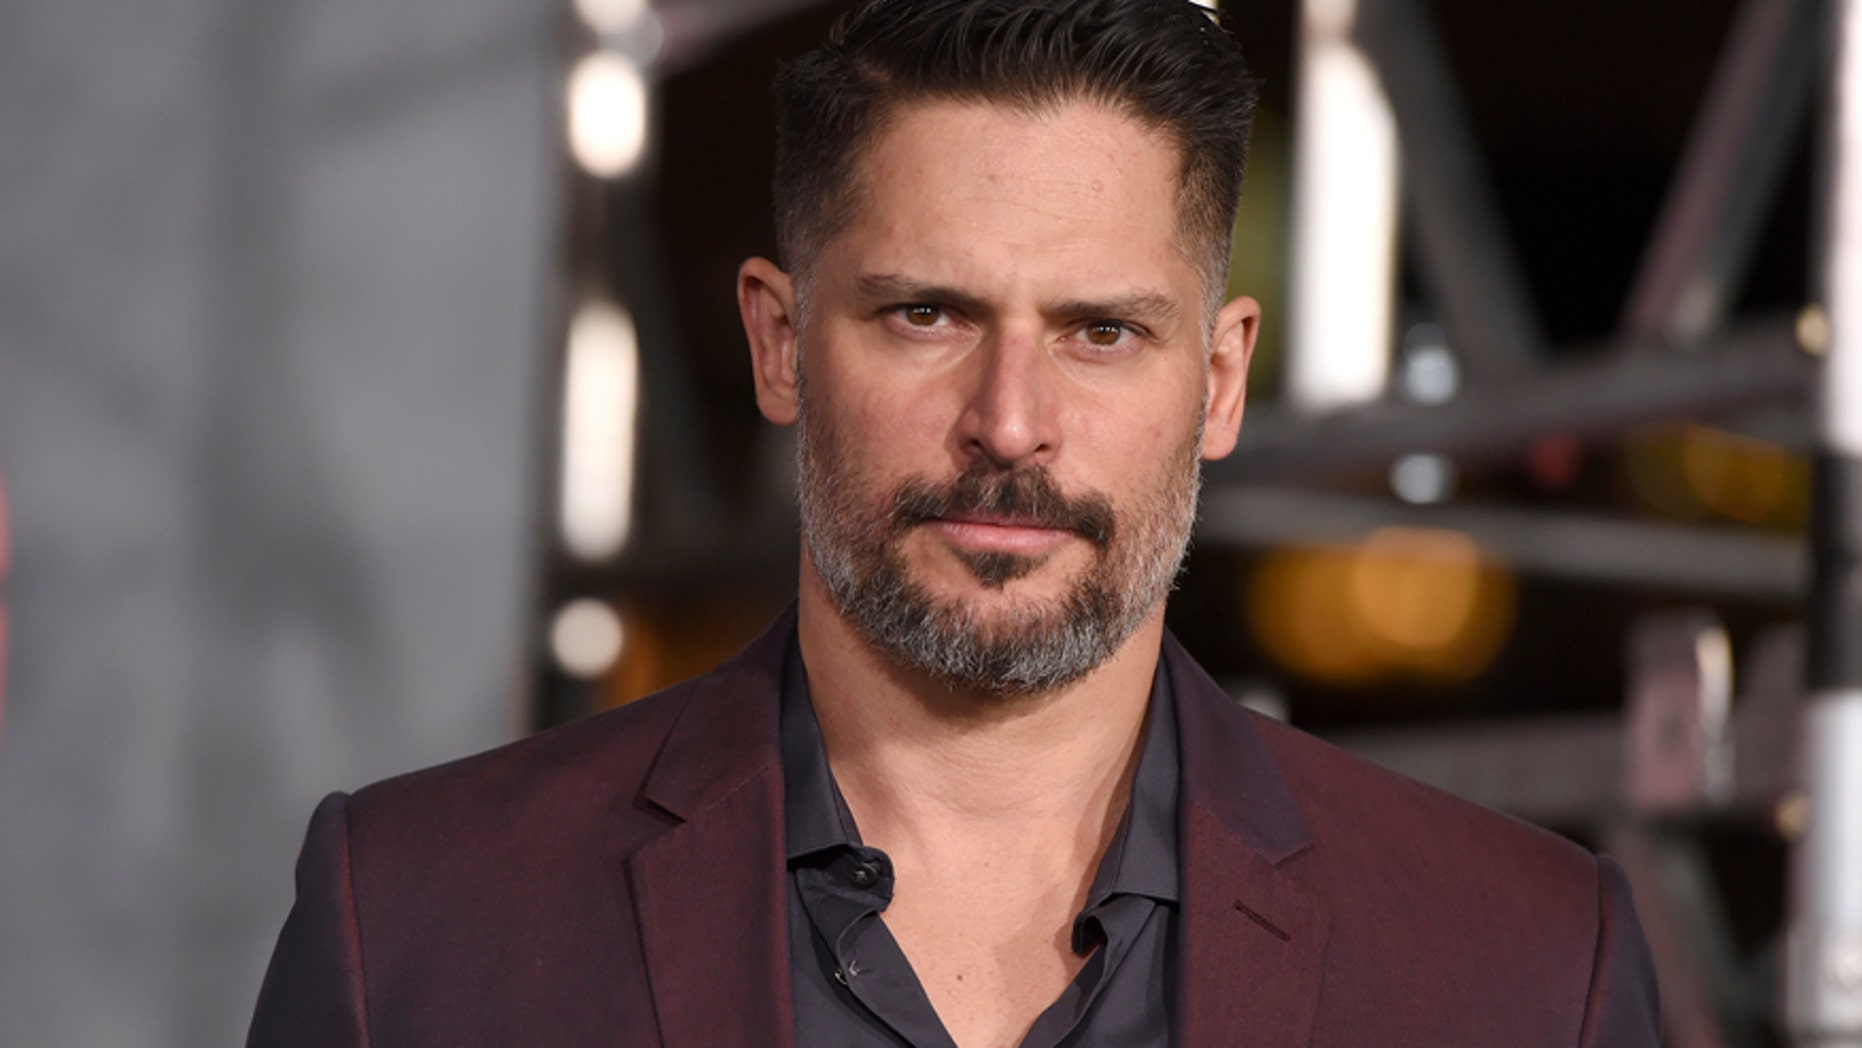 """Joe Manganiello arrives at the Los Angeles premiere of """"Kong: Skull Island"""" at the Dolby Theatre on Wednesday, March 8, 2017."""